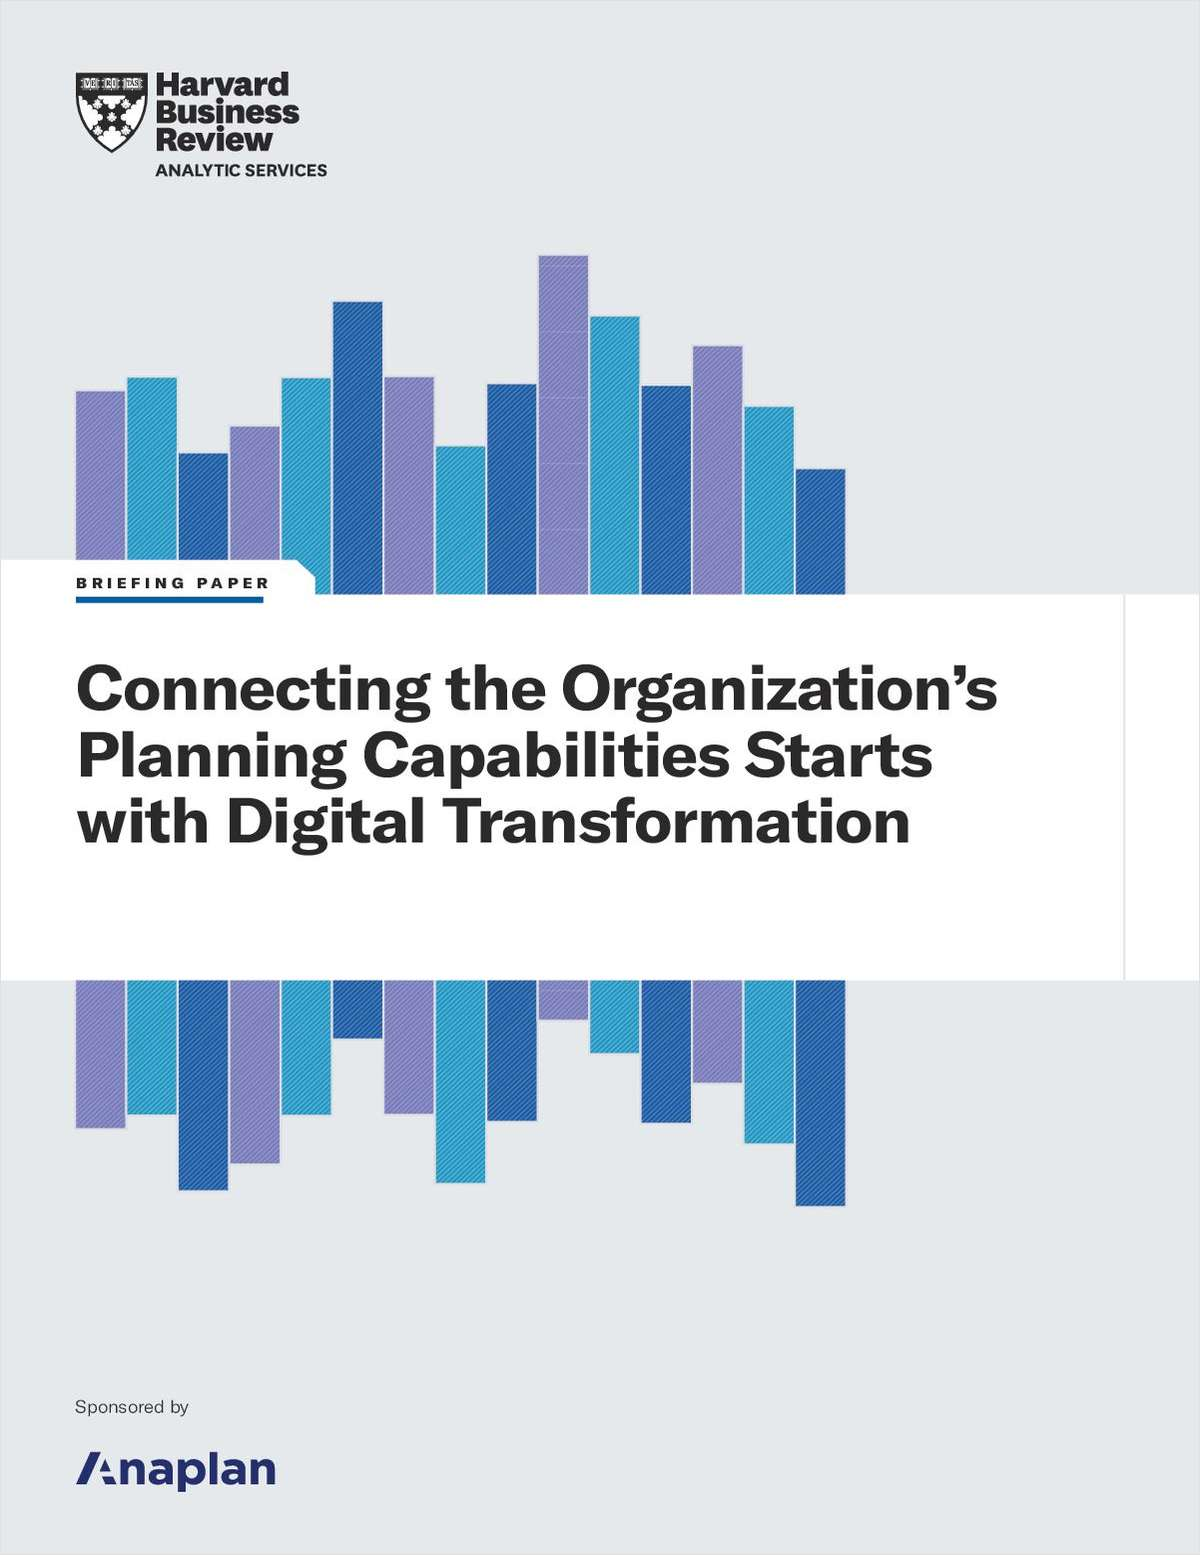 Connecting the Organization's Planning Capabilities Starts with Digital Transformation